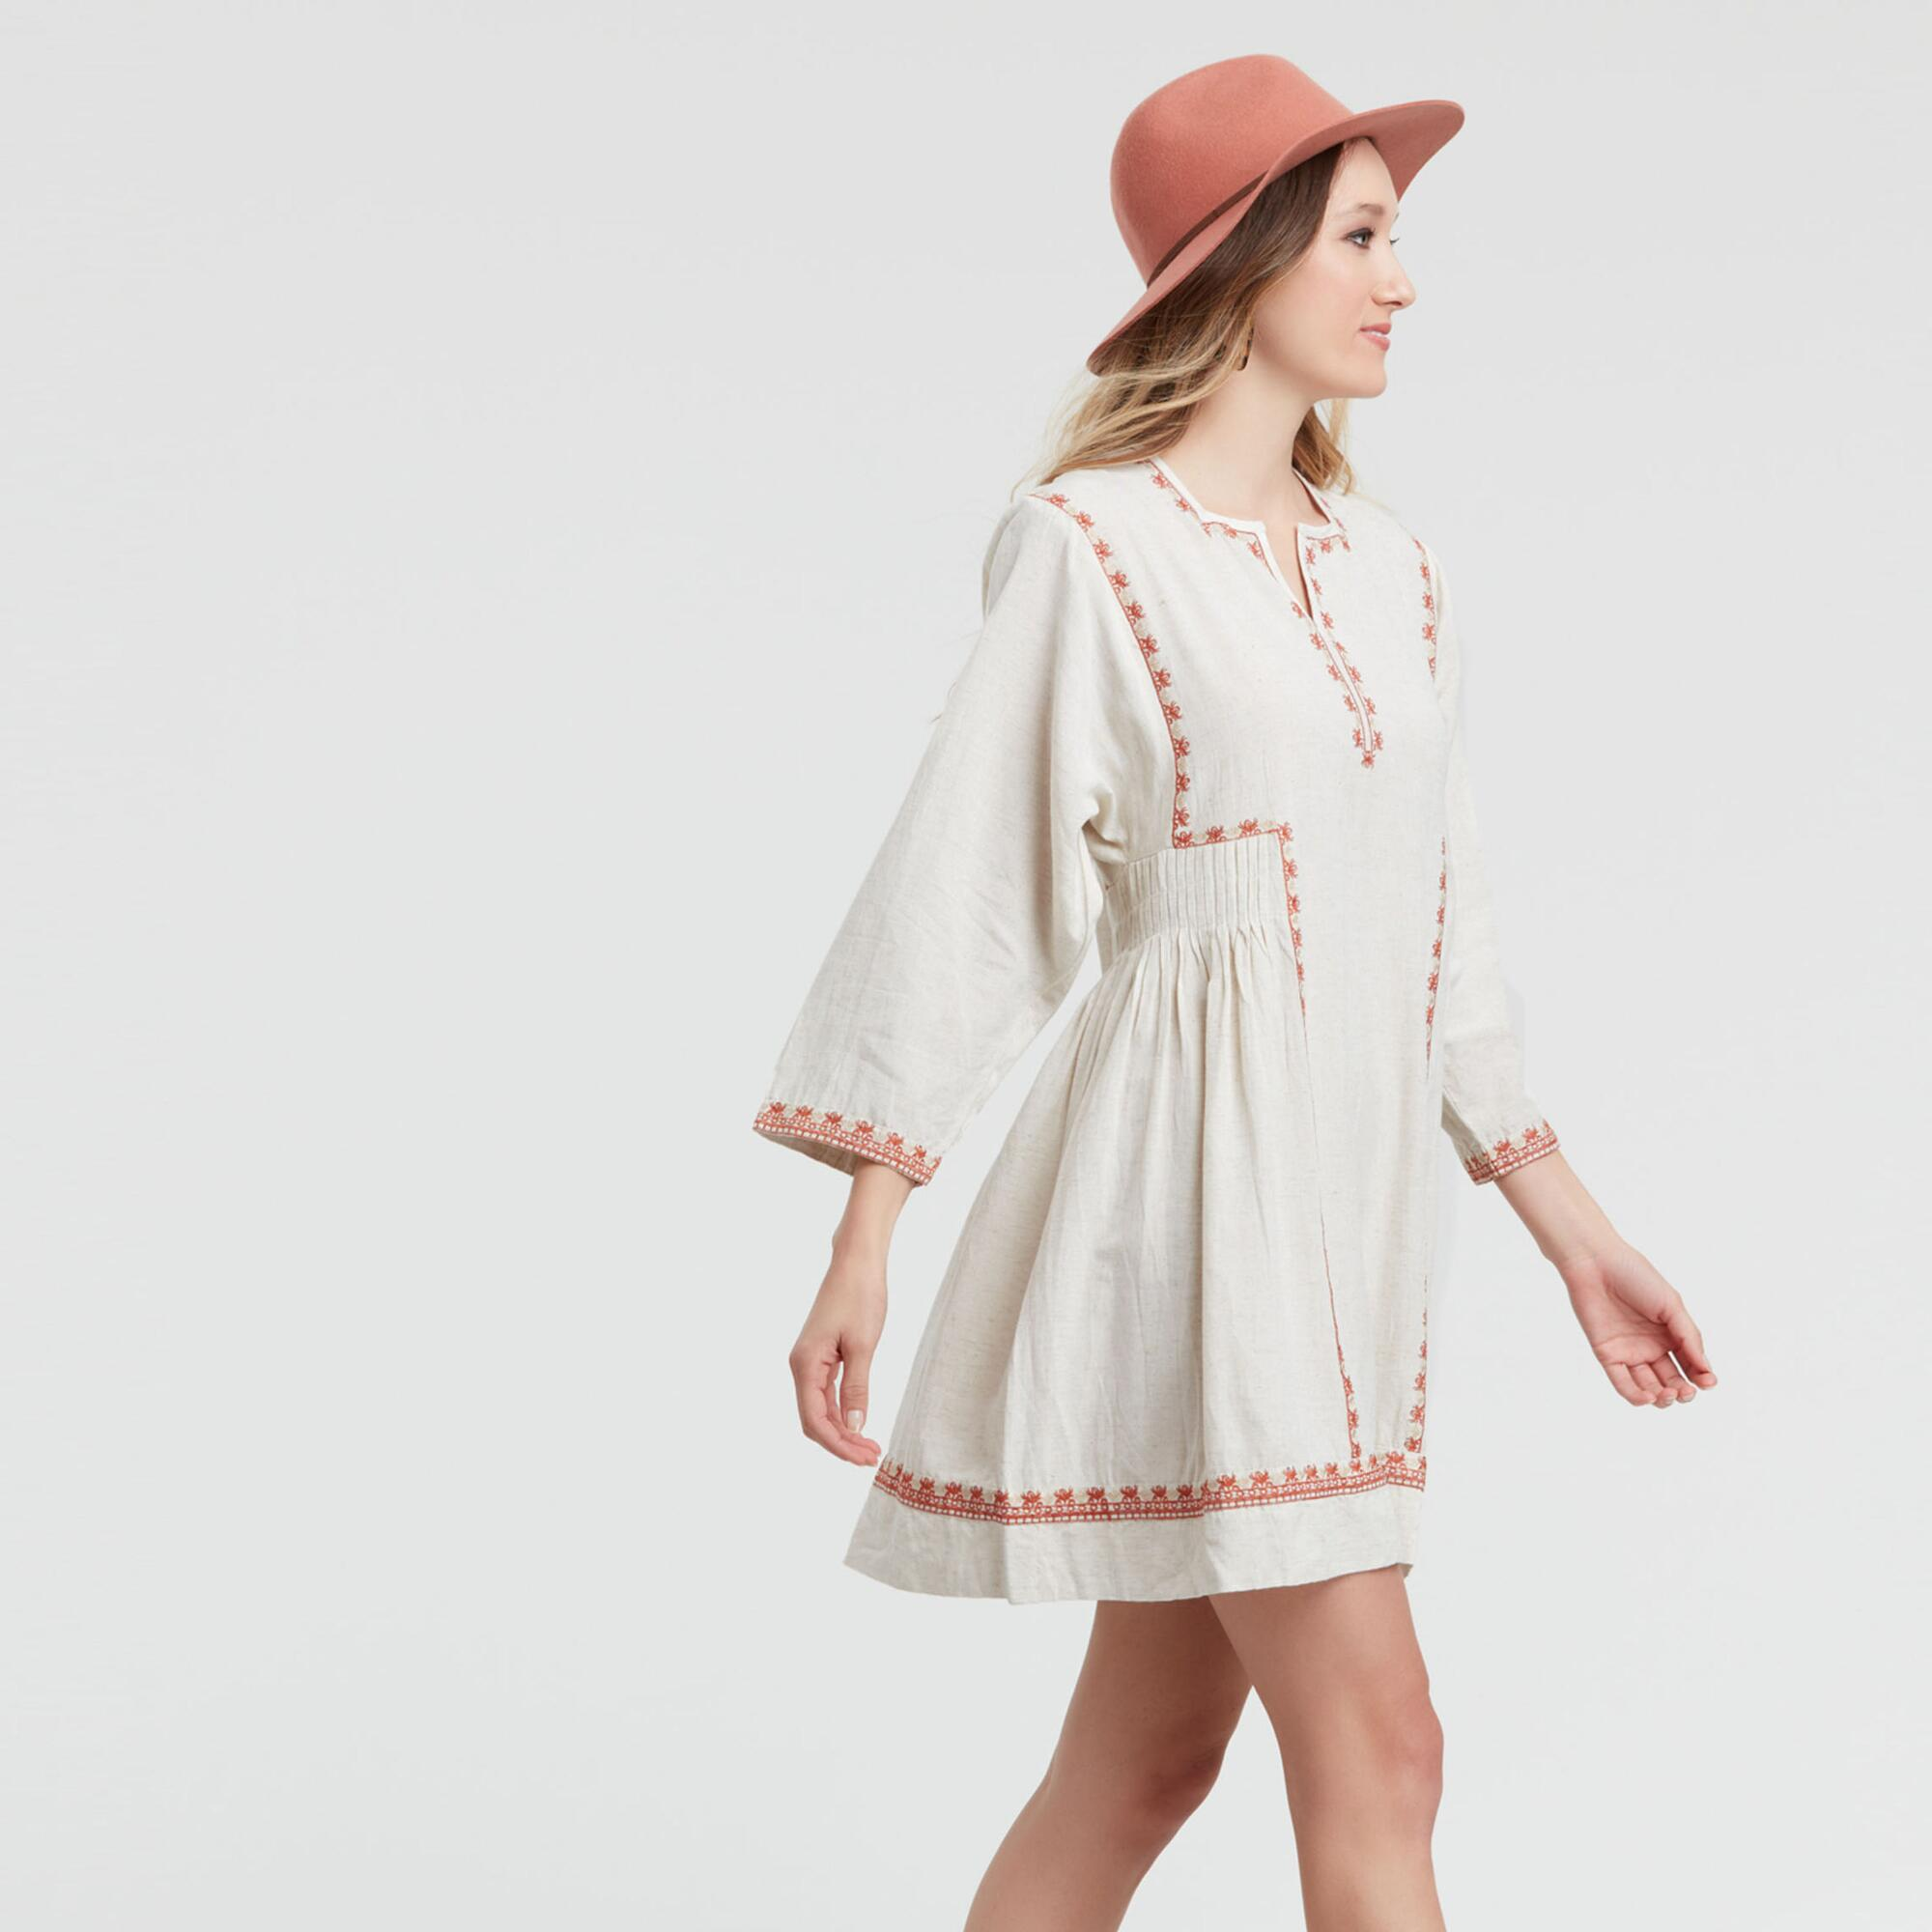 500 Vintage Style Dresses for Sale Oatmeal and Burnt Orange Embroidered Phoebe Dress White - Lgxlg by World Market Lgxlg $39.99 AT vintagedancer.com